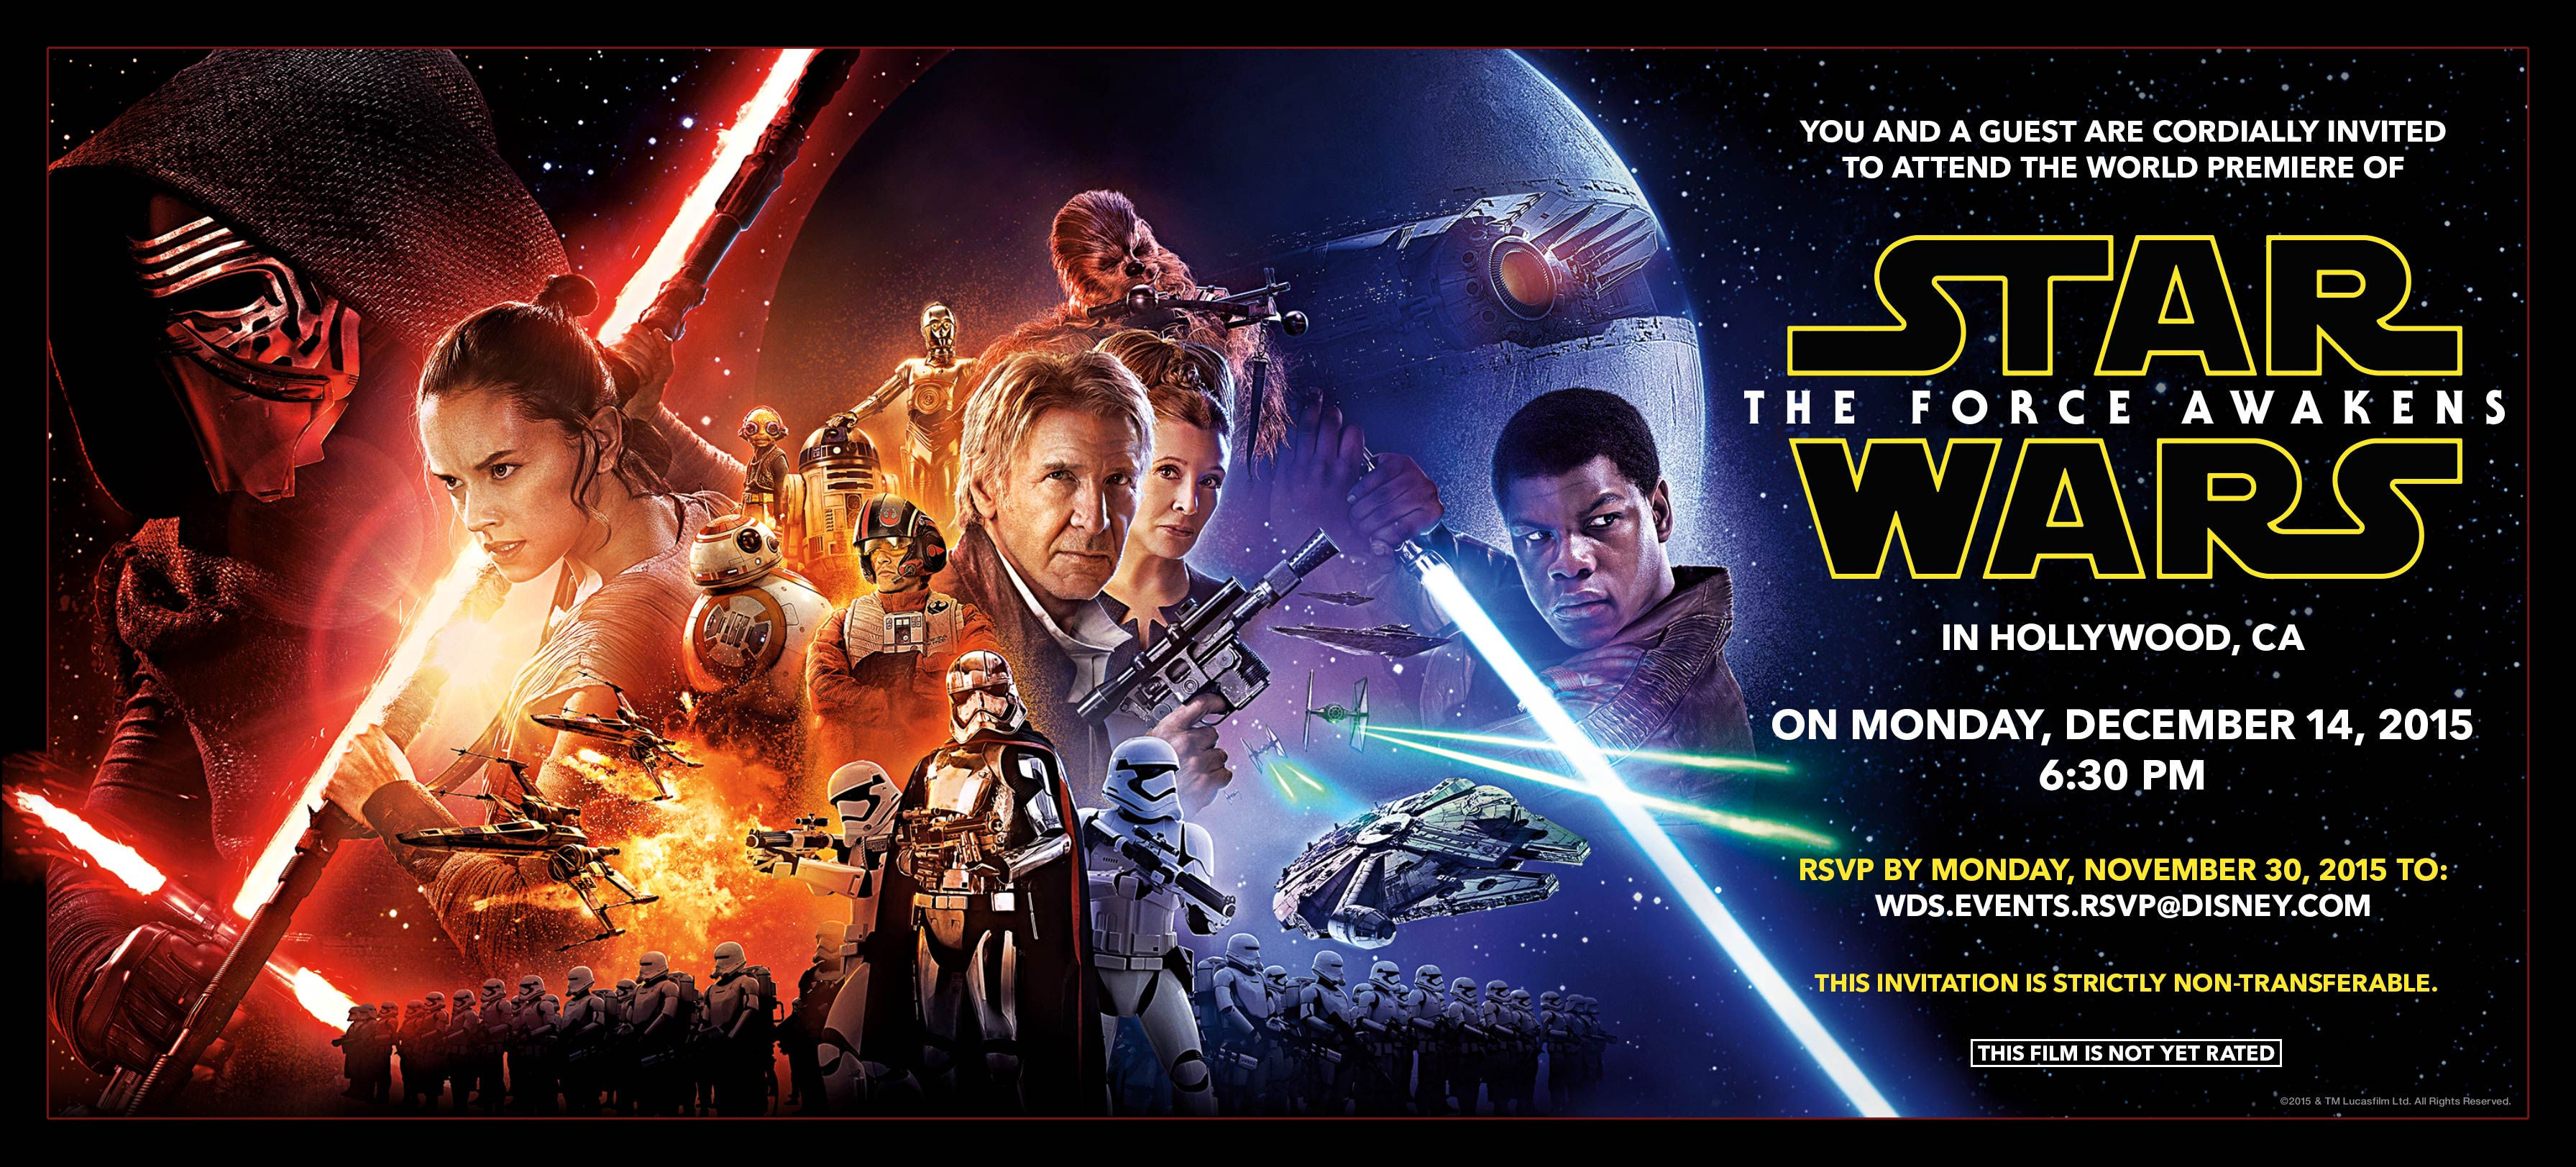 livestream the star wars the force awakens world premiere livestream the star wars the force awakens world premiere monday night